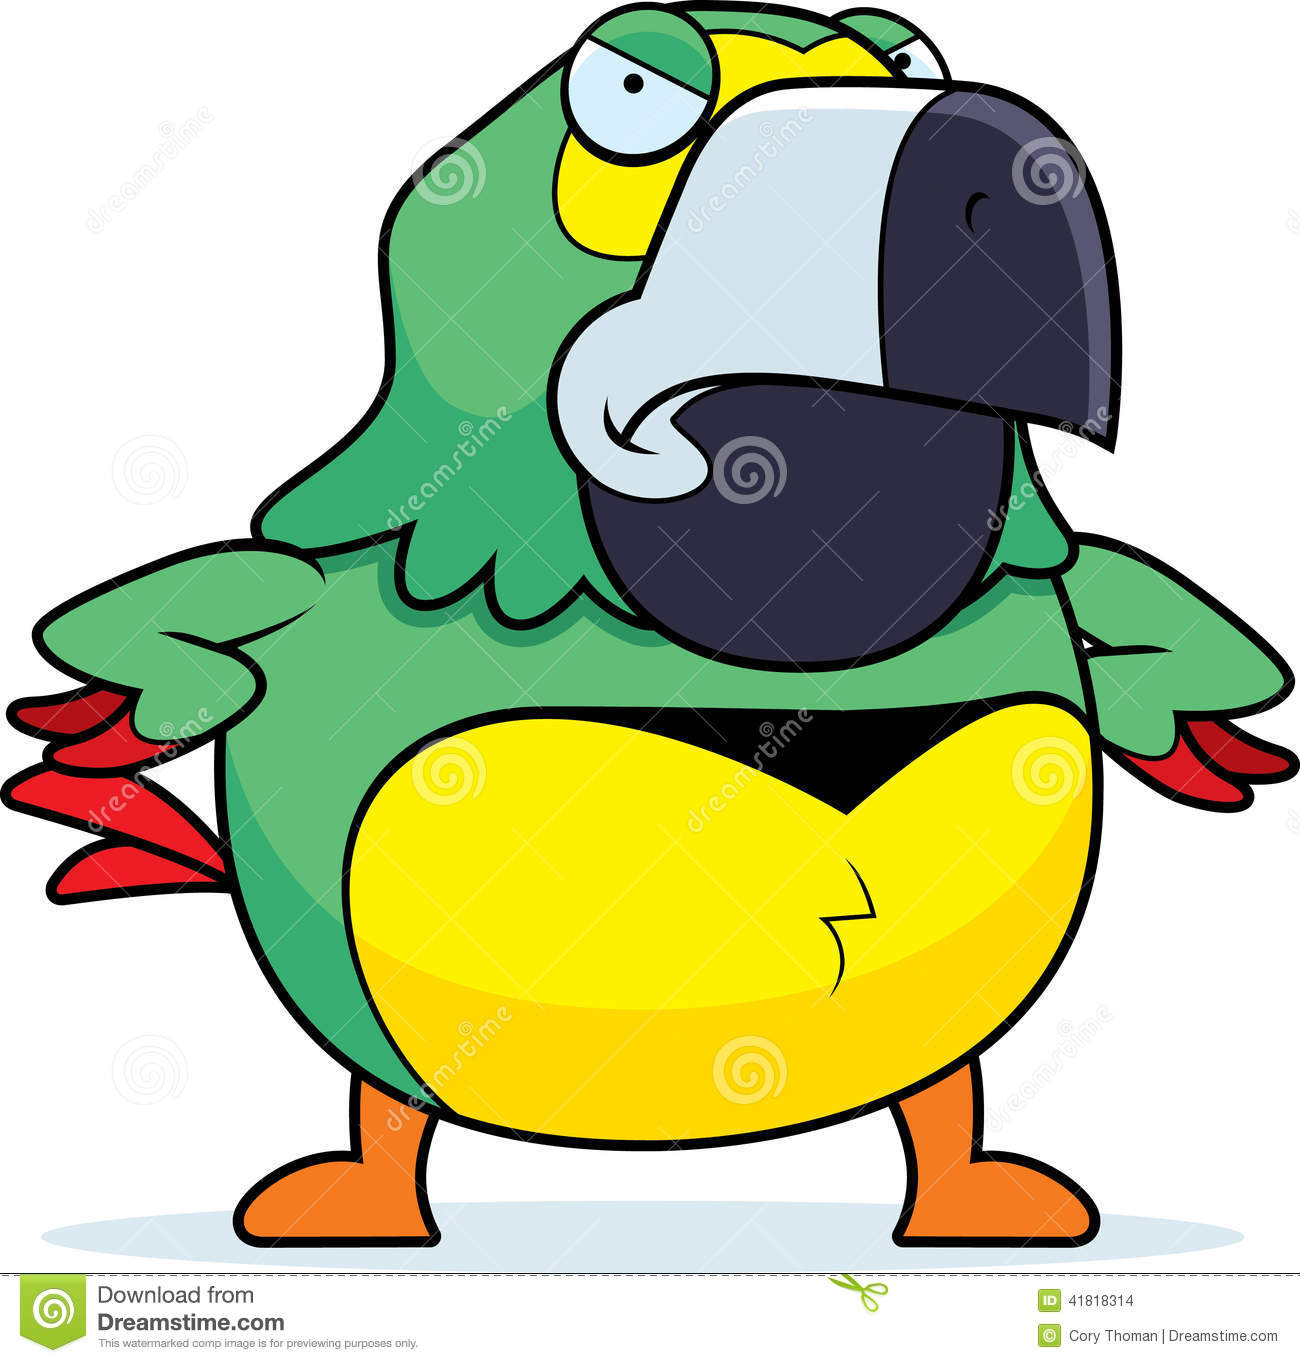 Angry Cartoon Parrot Stock Vector - Image: 41818314